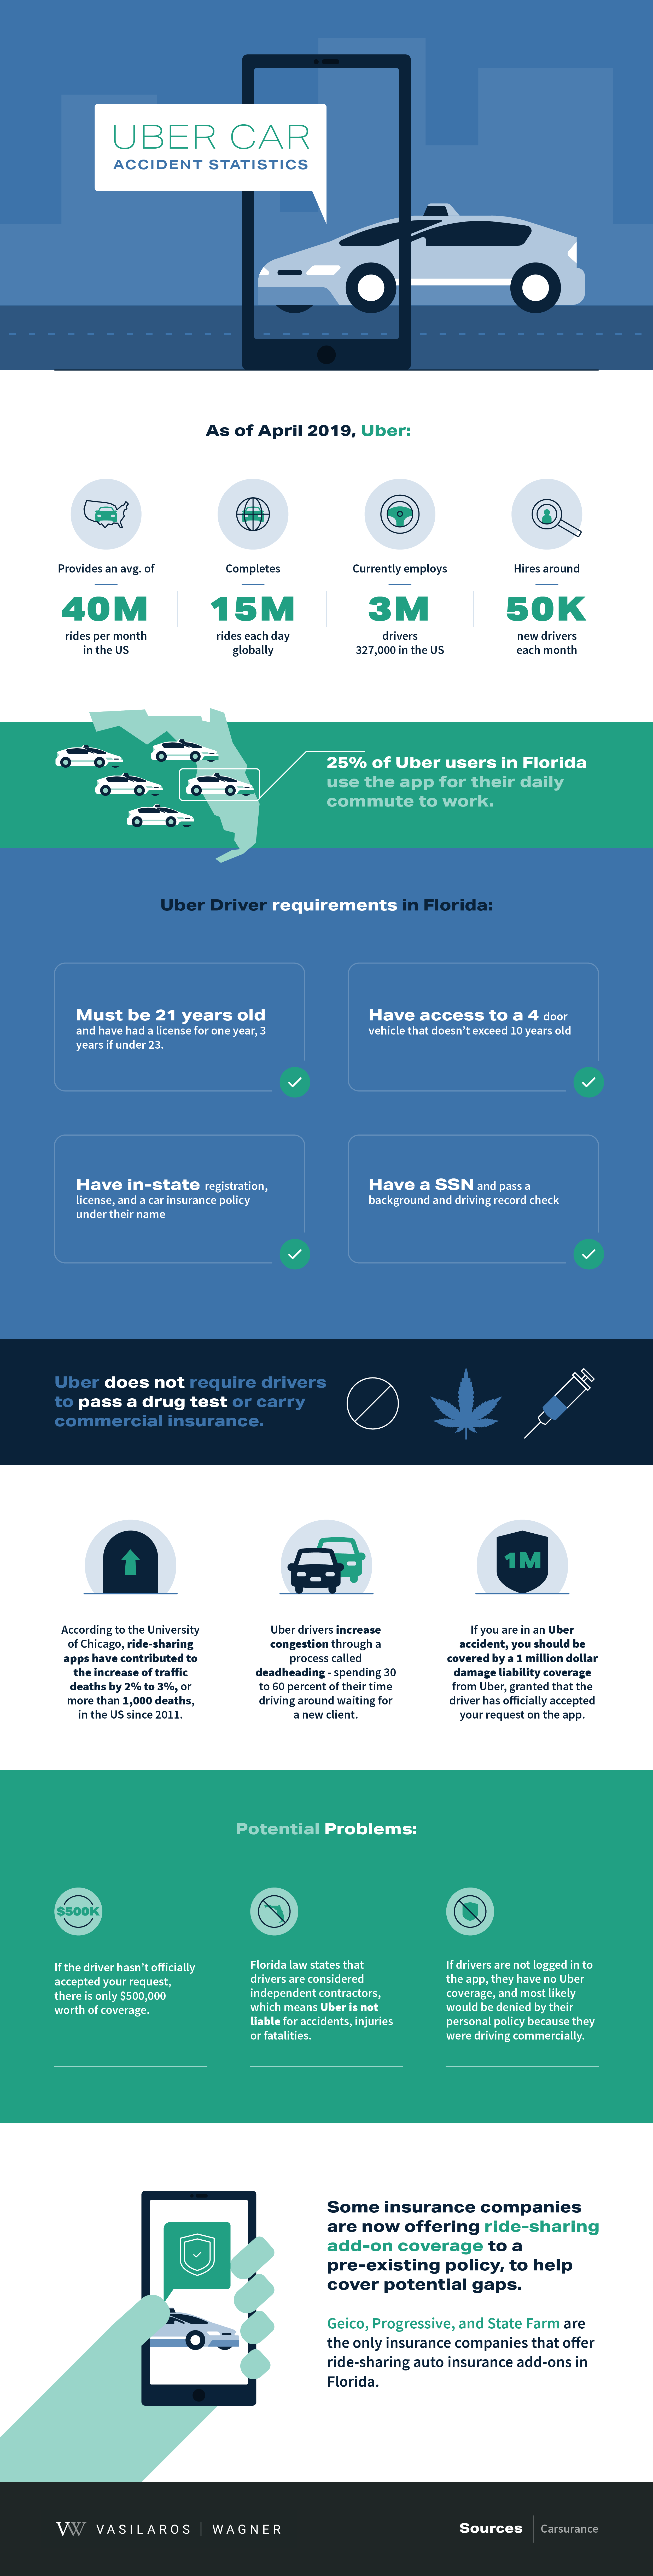 uber car accident infographic